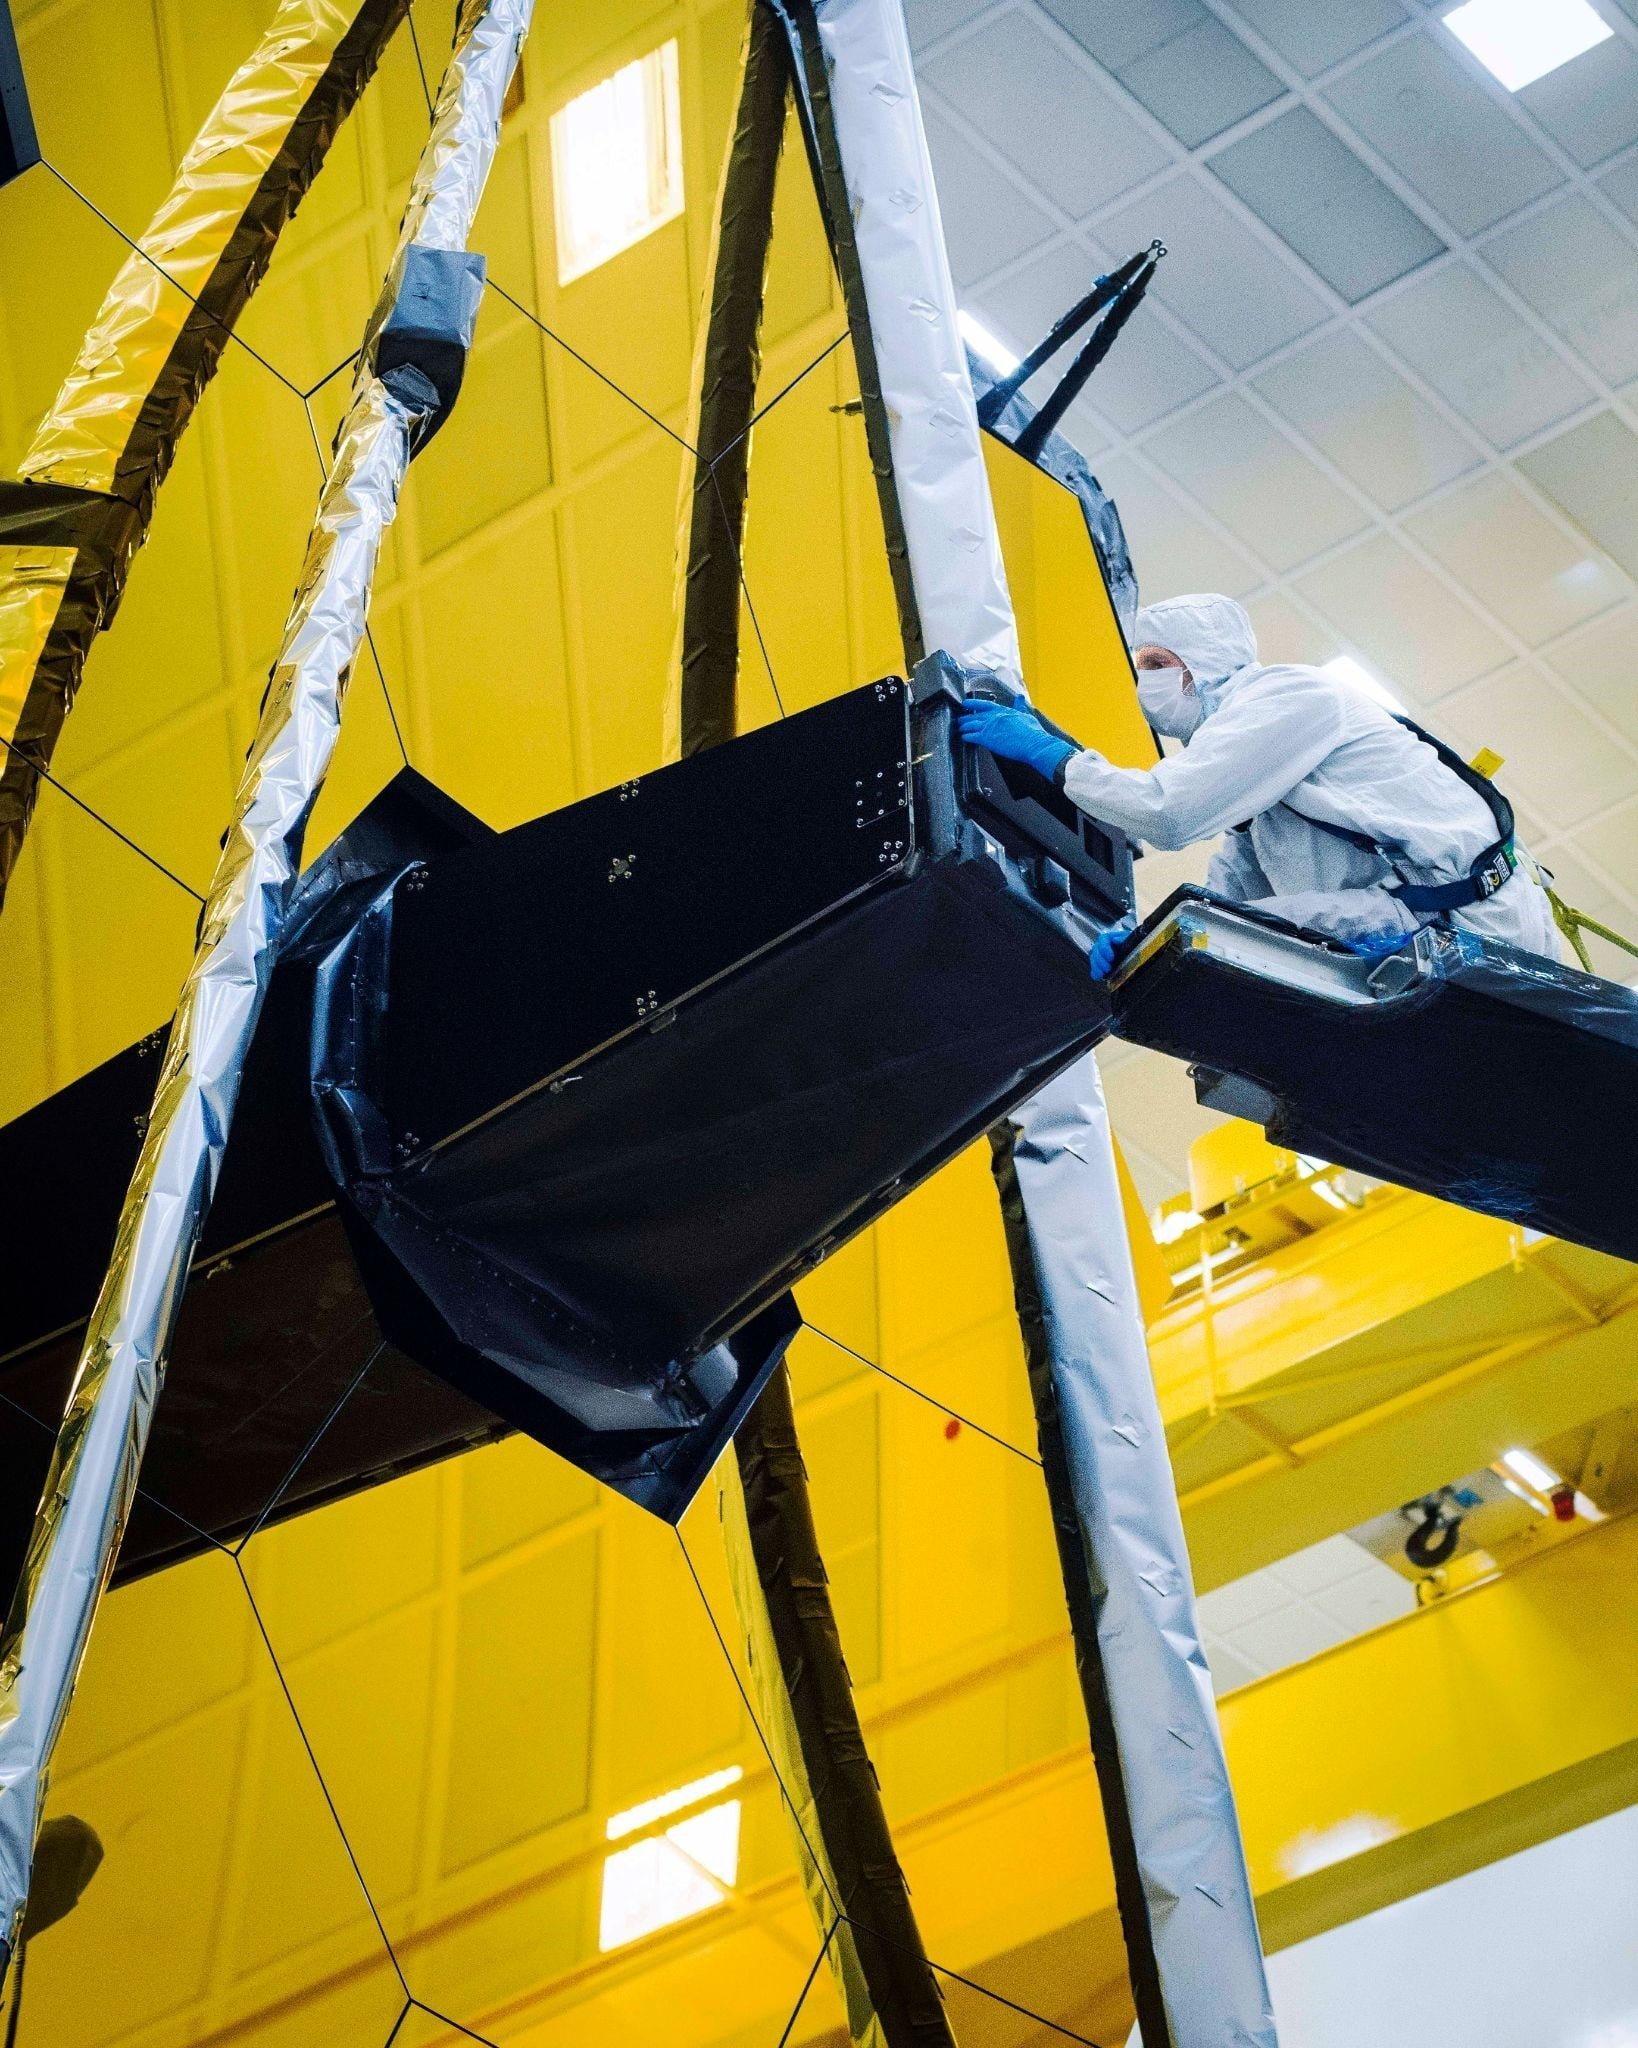 How NASA is testing the James Webb Space Telescope before its launch